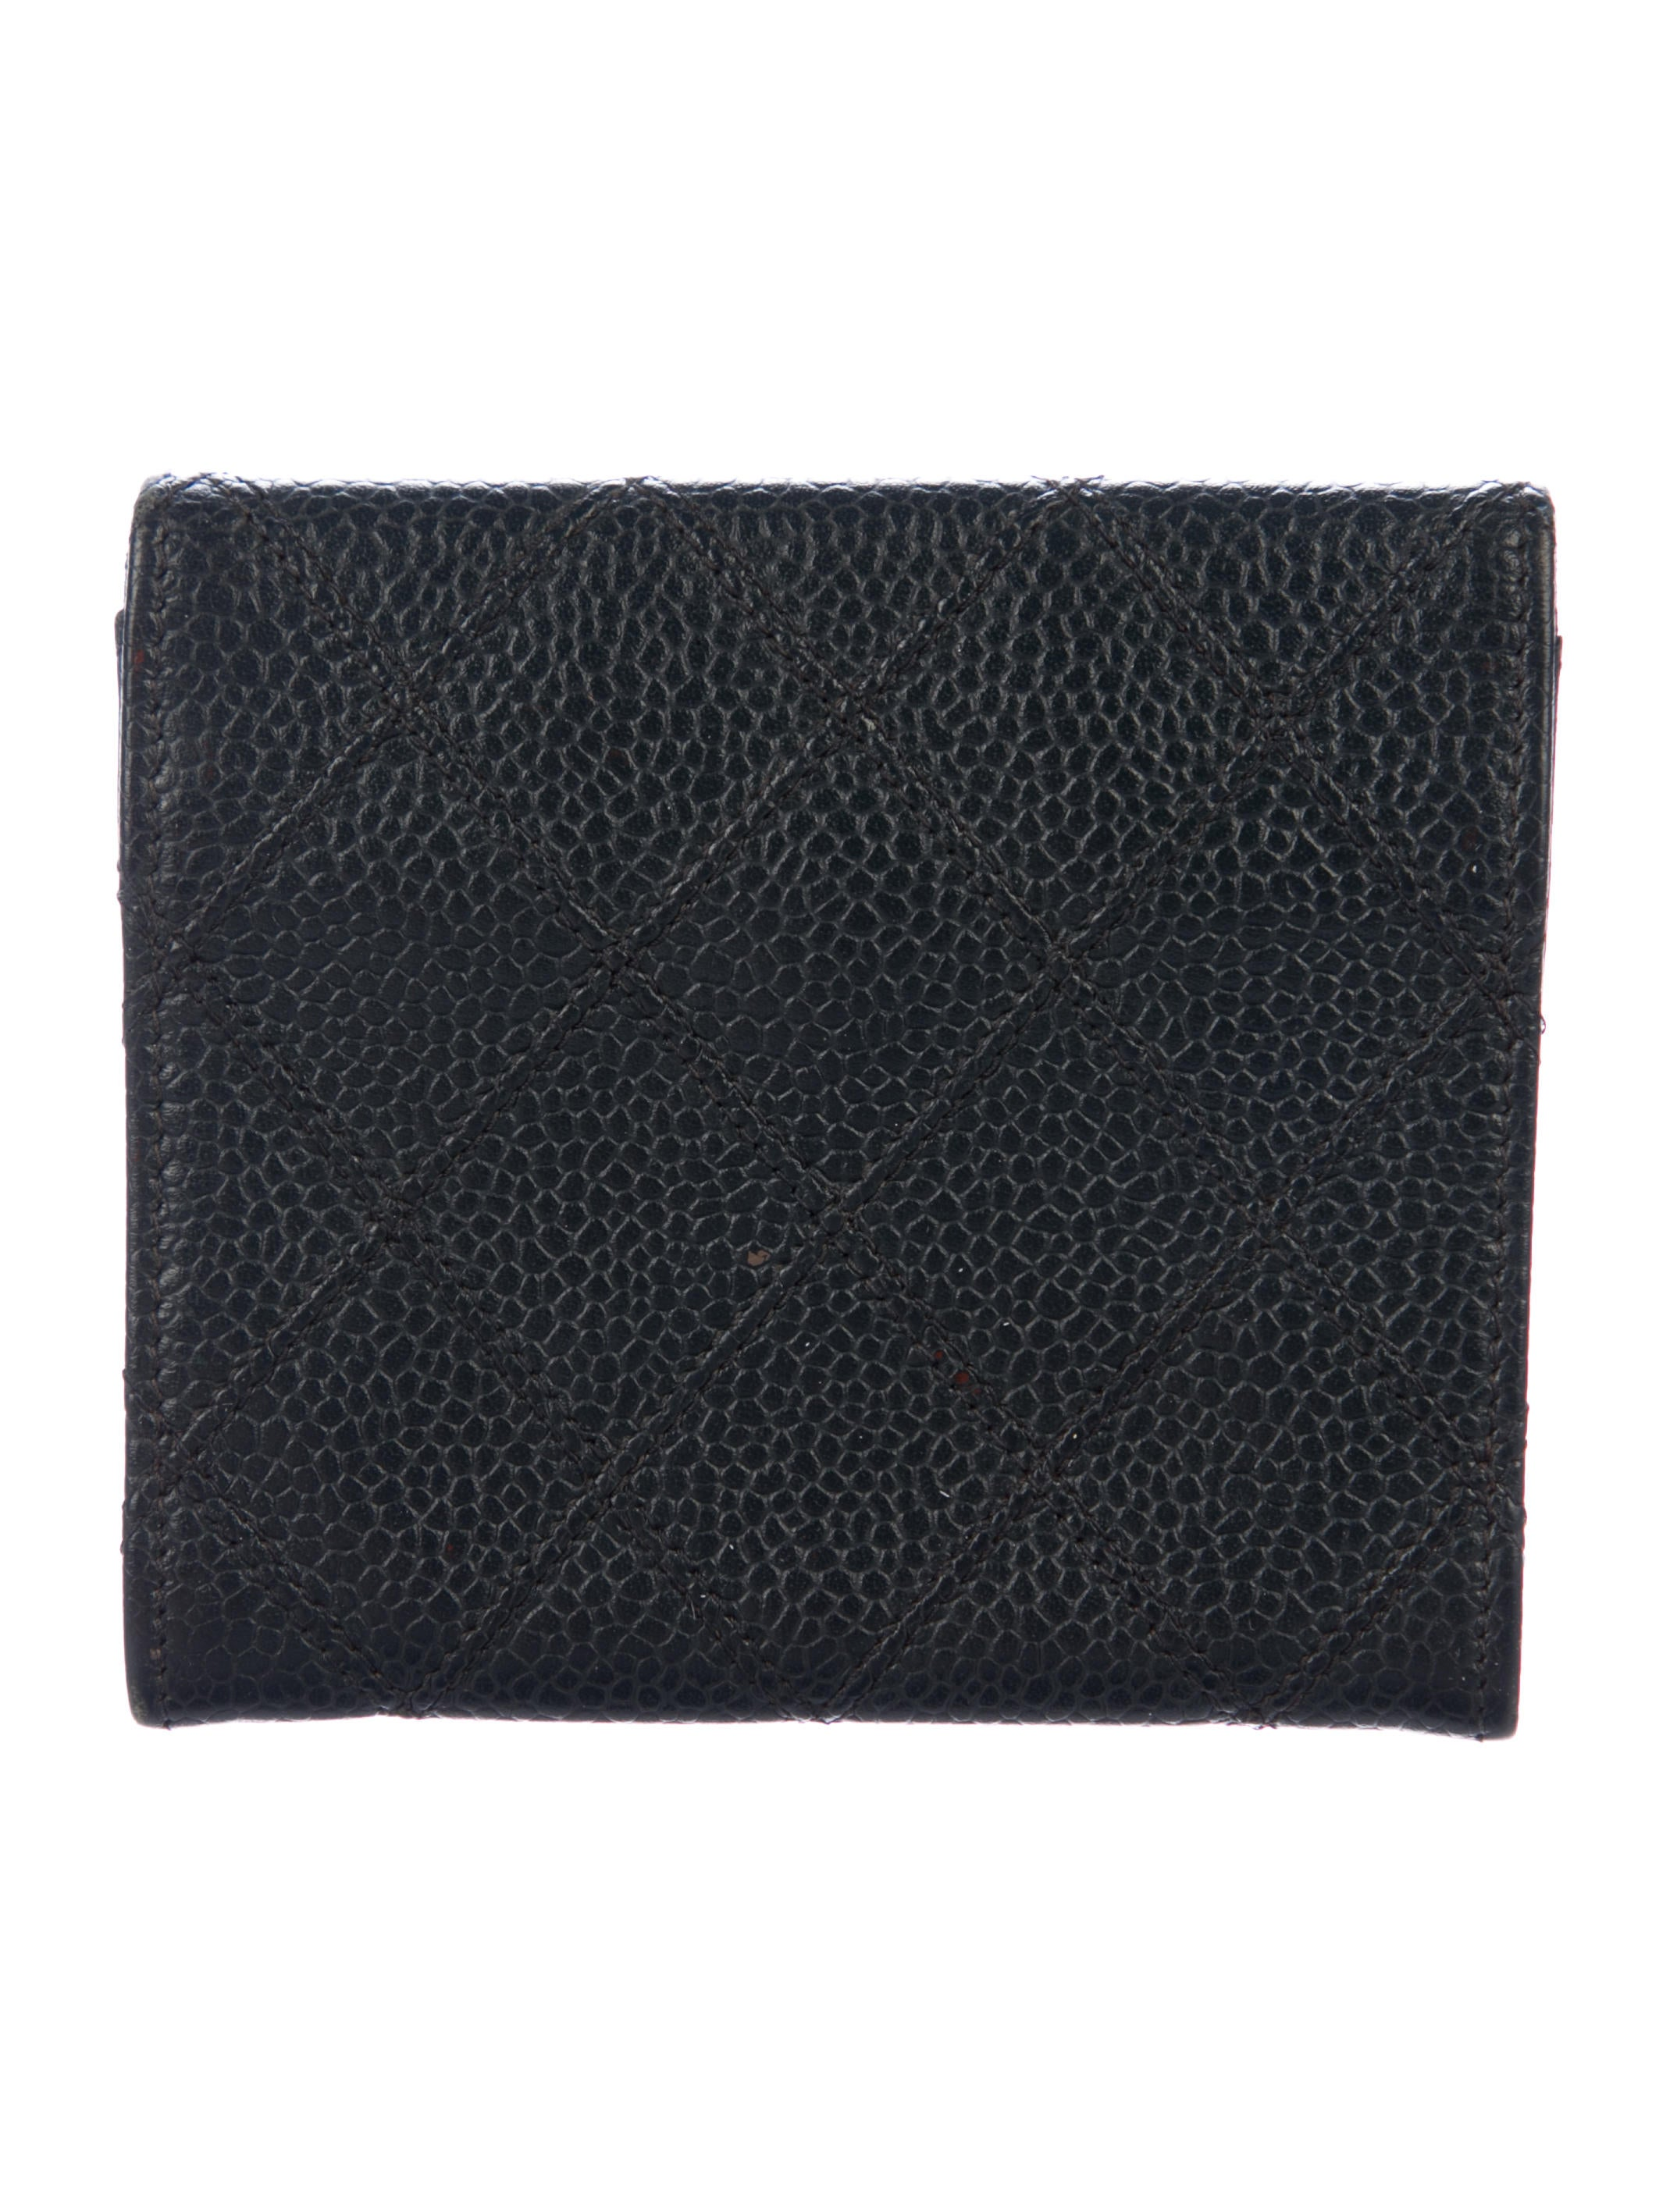 Chanel Vintage Quilted Business Card Holder Accessories